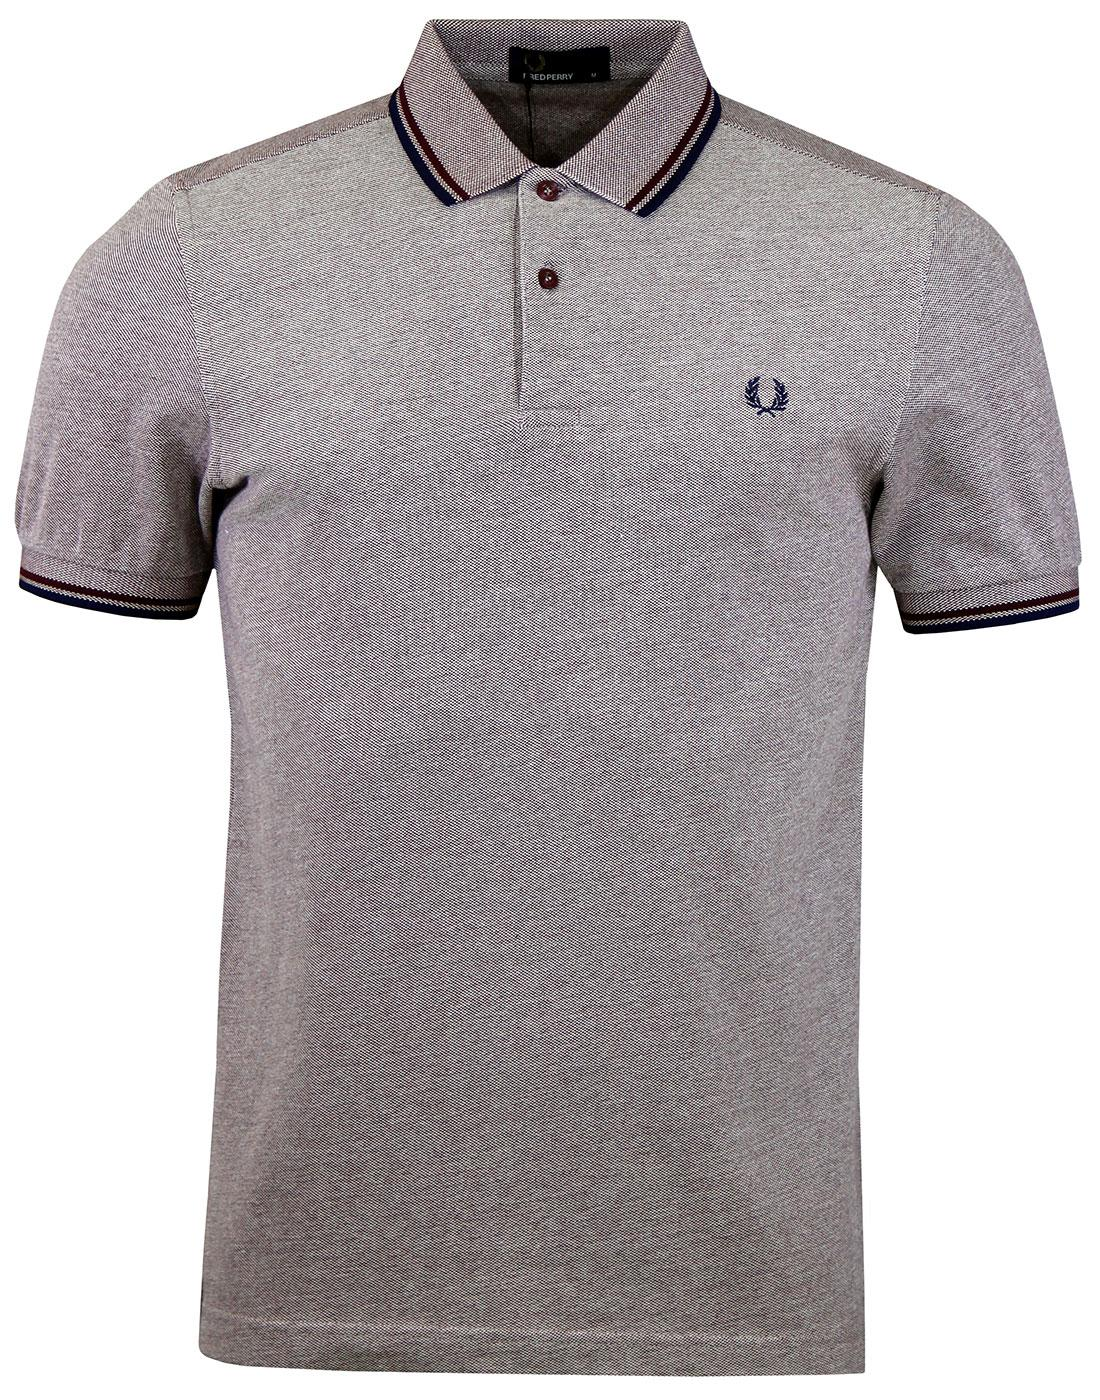 FRED PERRY M3600 Mod Twin Tipped Polo Shirt M/O